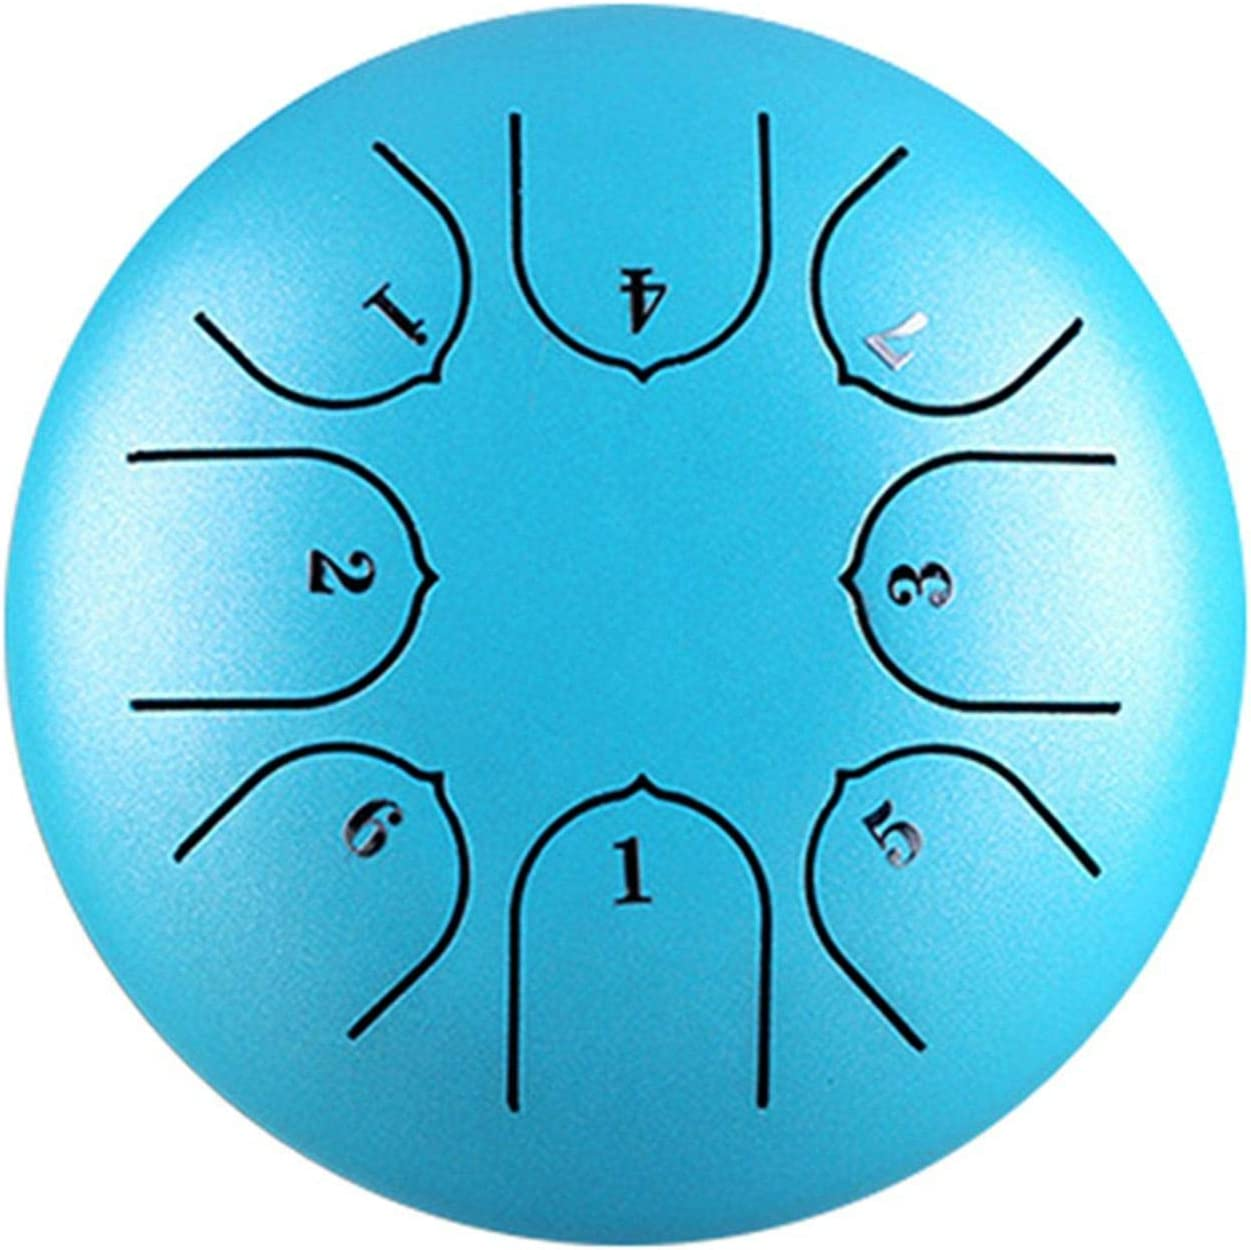 All items in the store A M Steel Tongue Drum 8 Notes Inch 6 Ha Discount mail order Tank Chakra